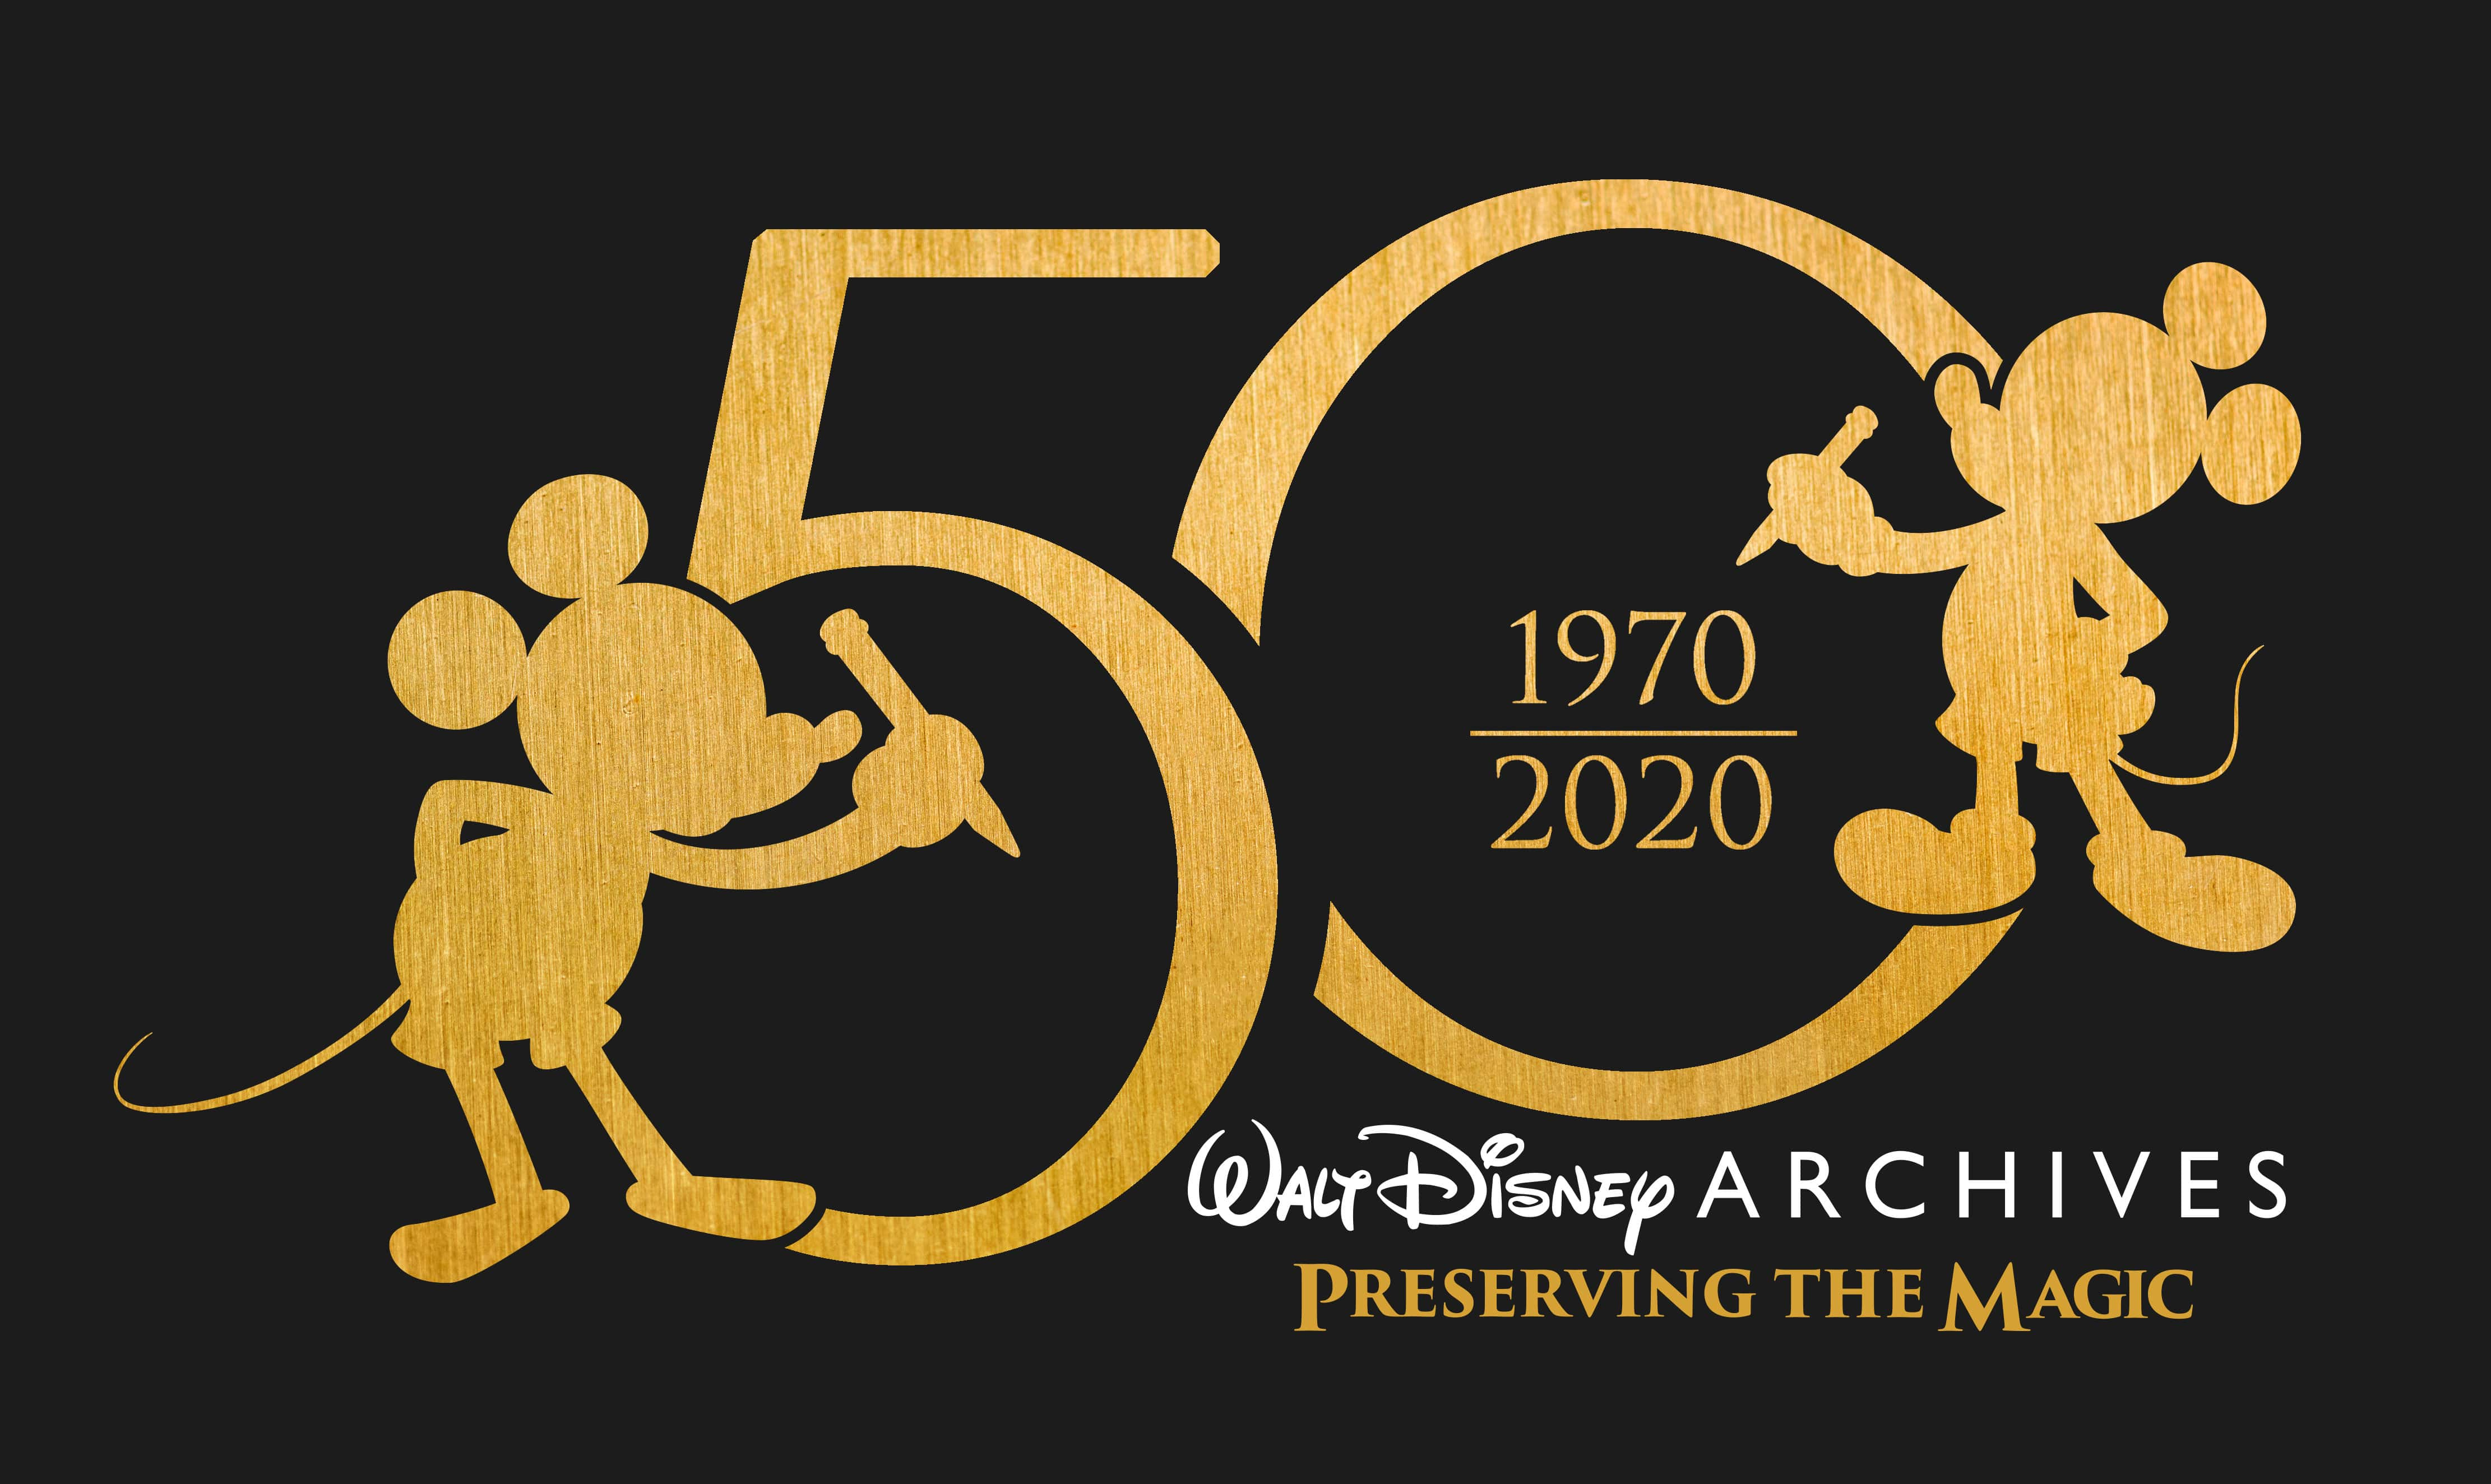 The Walt Disney Archives 50th Anniversary